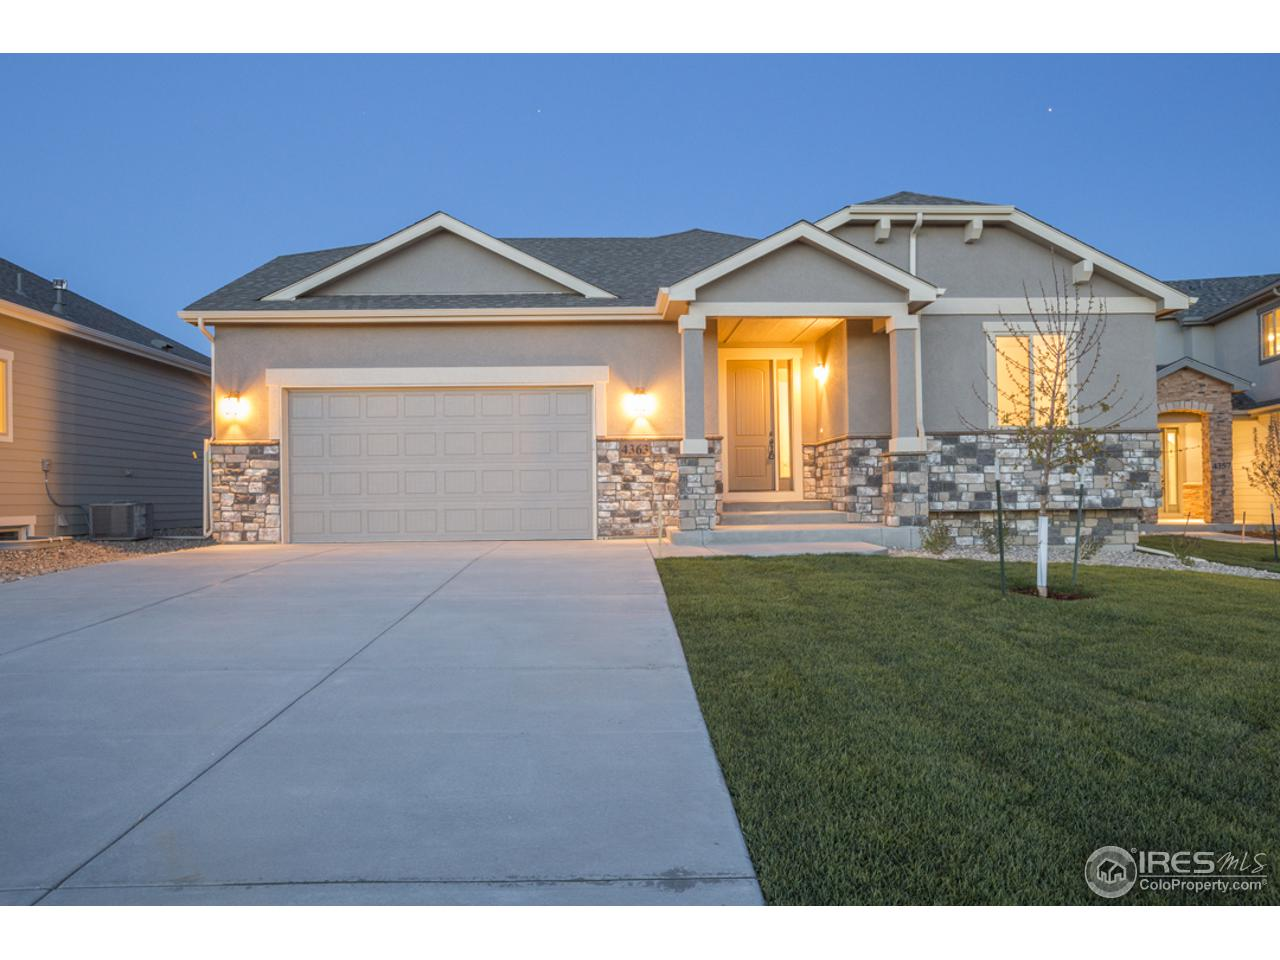 4363 Cicely Ct, Johnstown, CO 80534